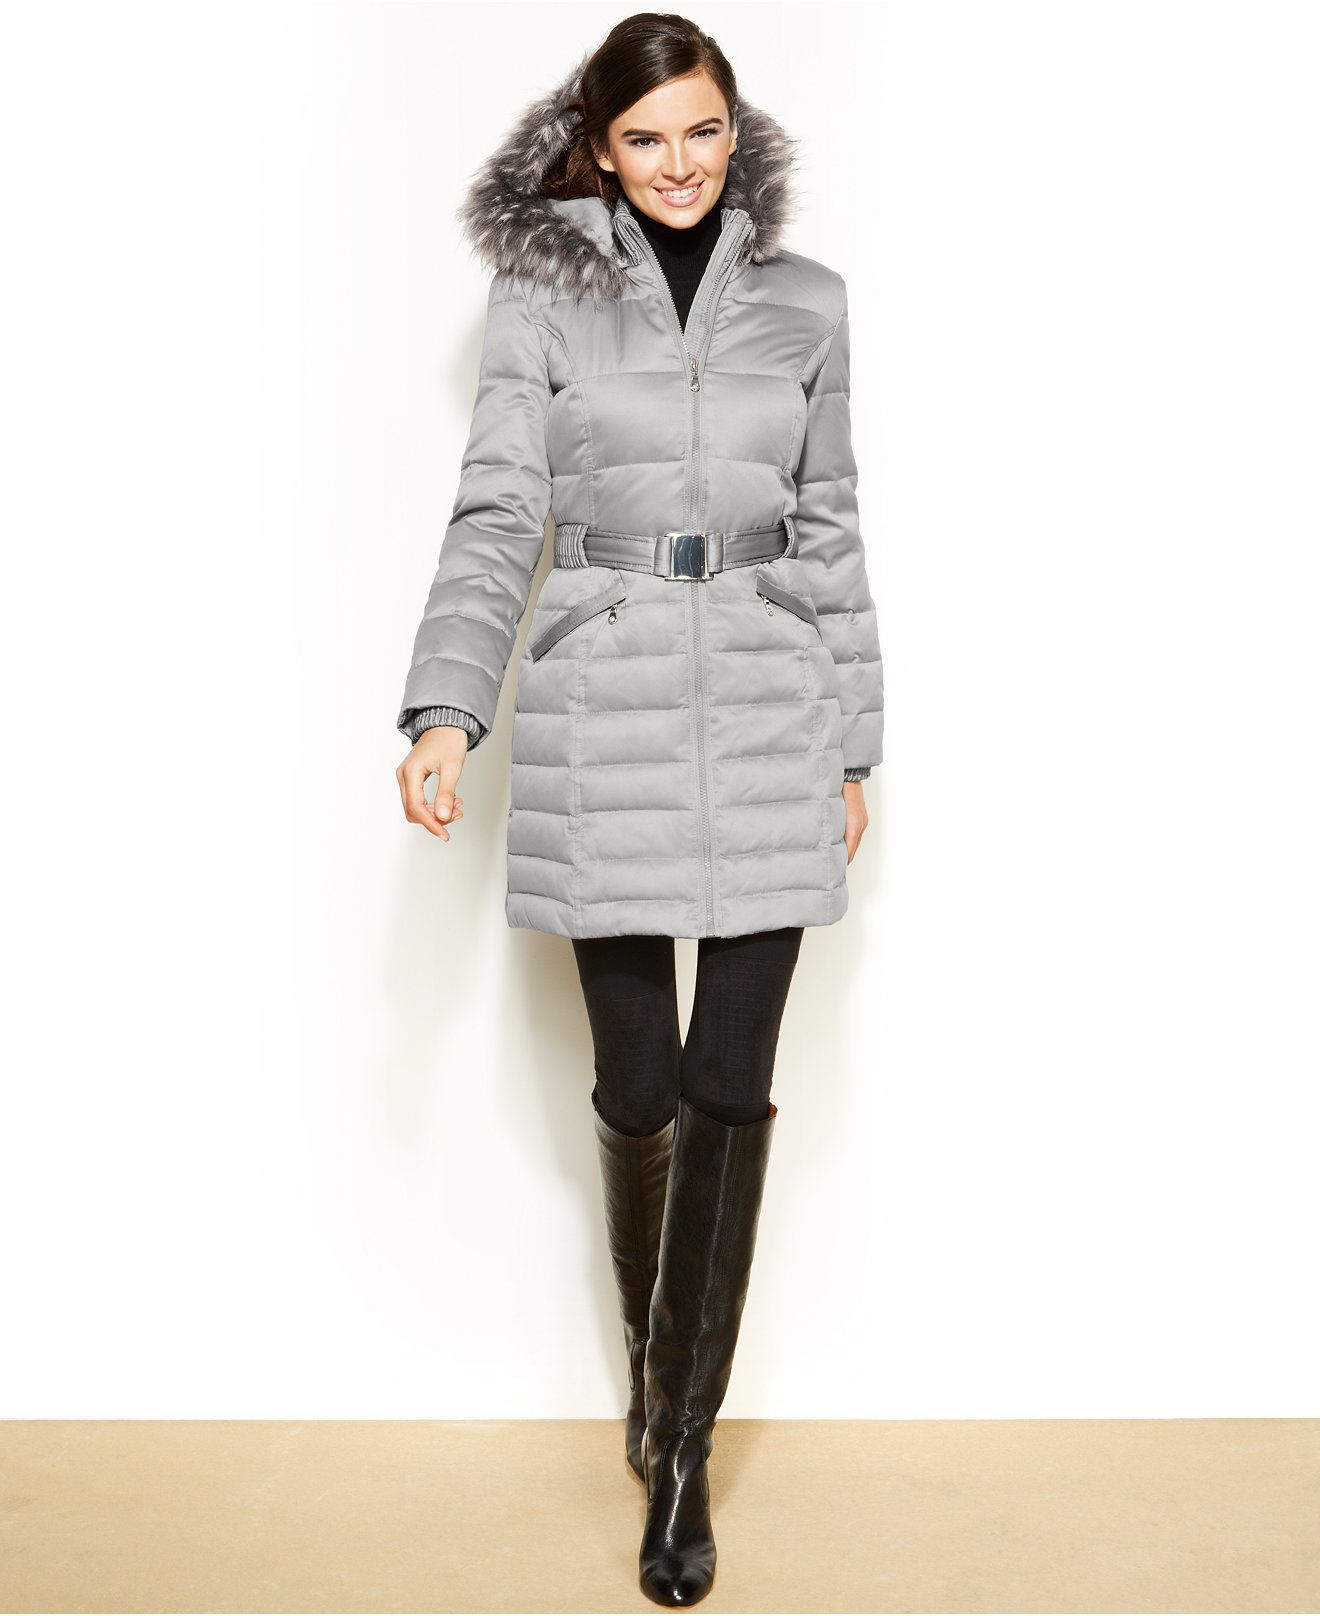 10 Best images about Trend We Love: Puffer Coats on Pinterest